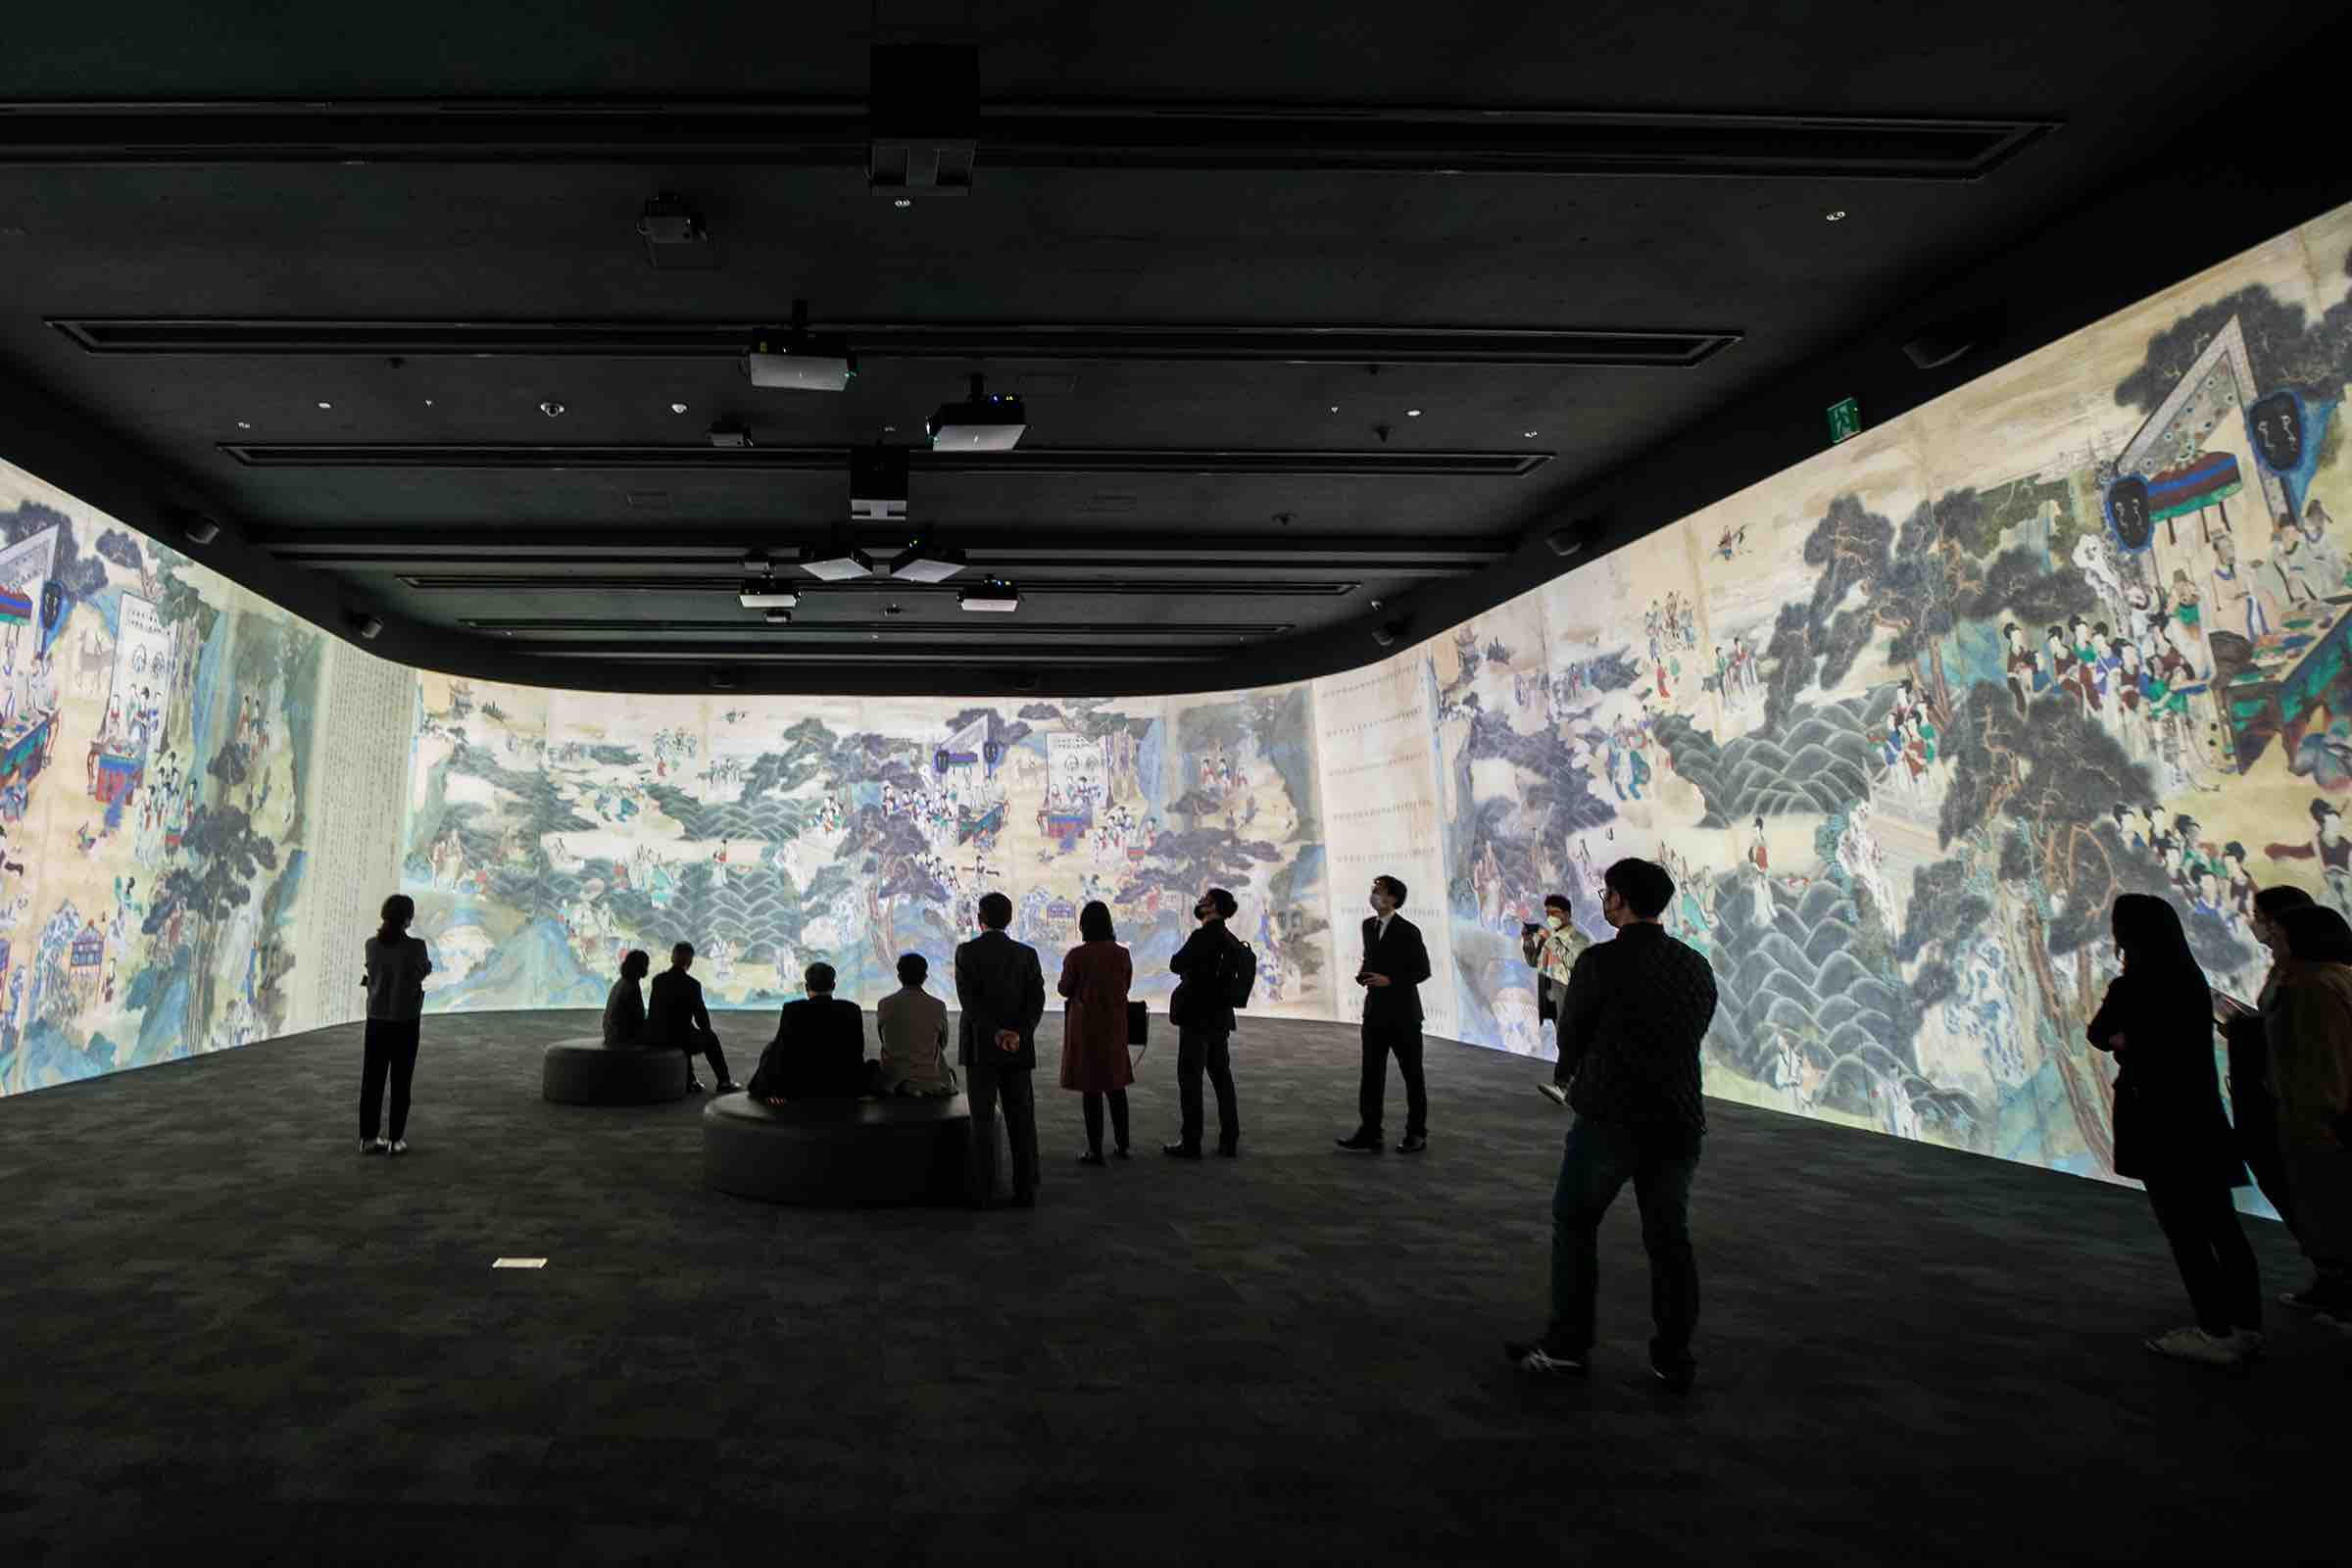 Immersive Digital Gallery opened at the National Museum of Korea